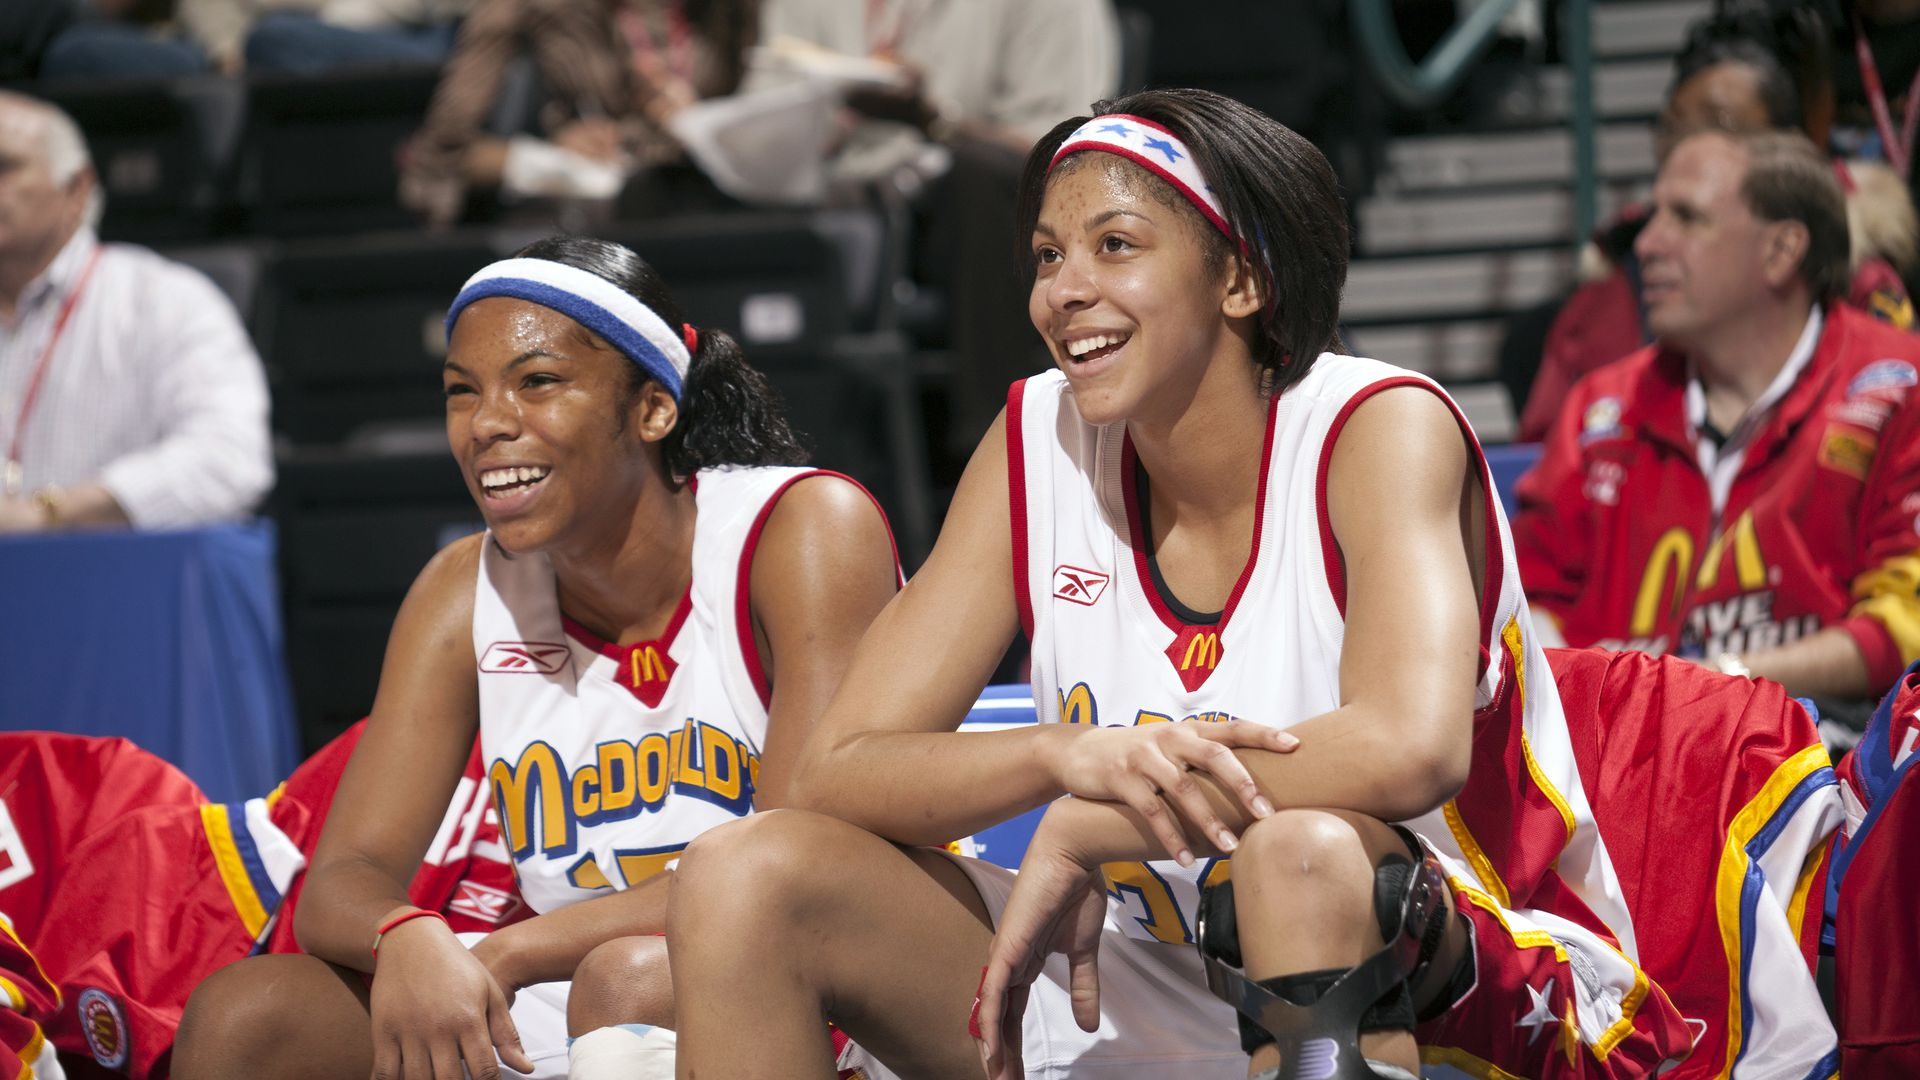 Candace Parker sits on a chair at a basketball game.